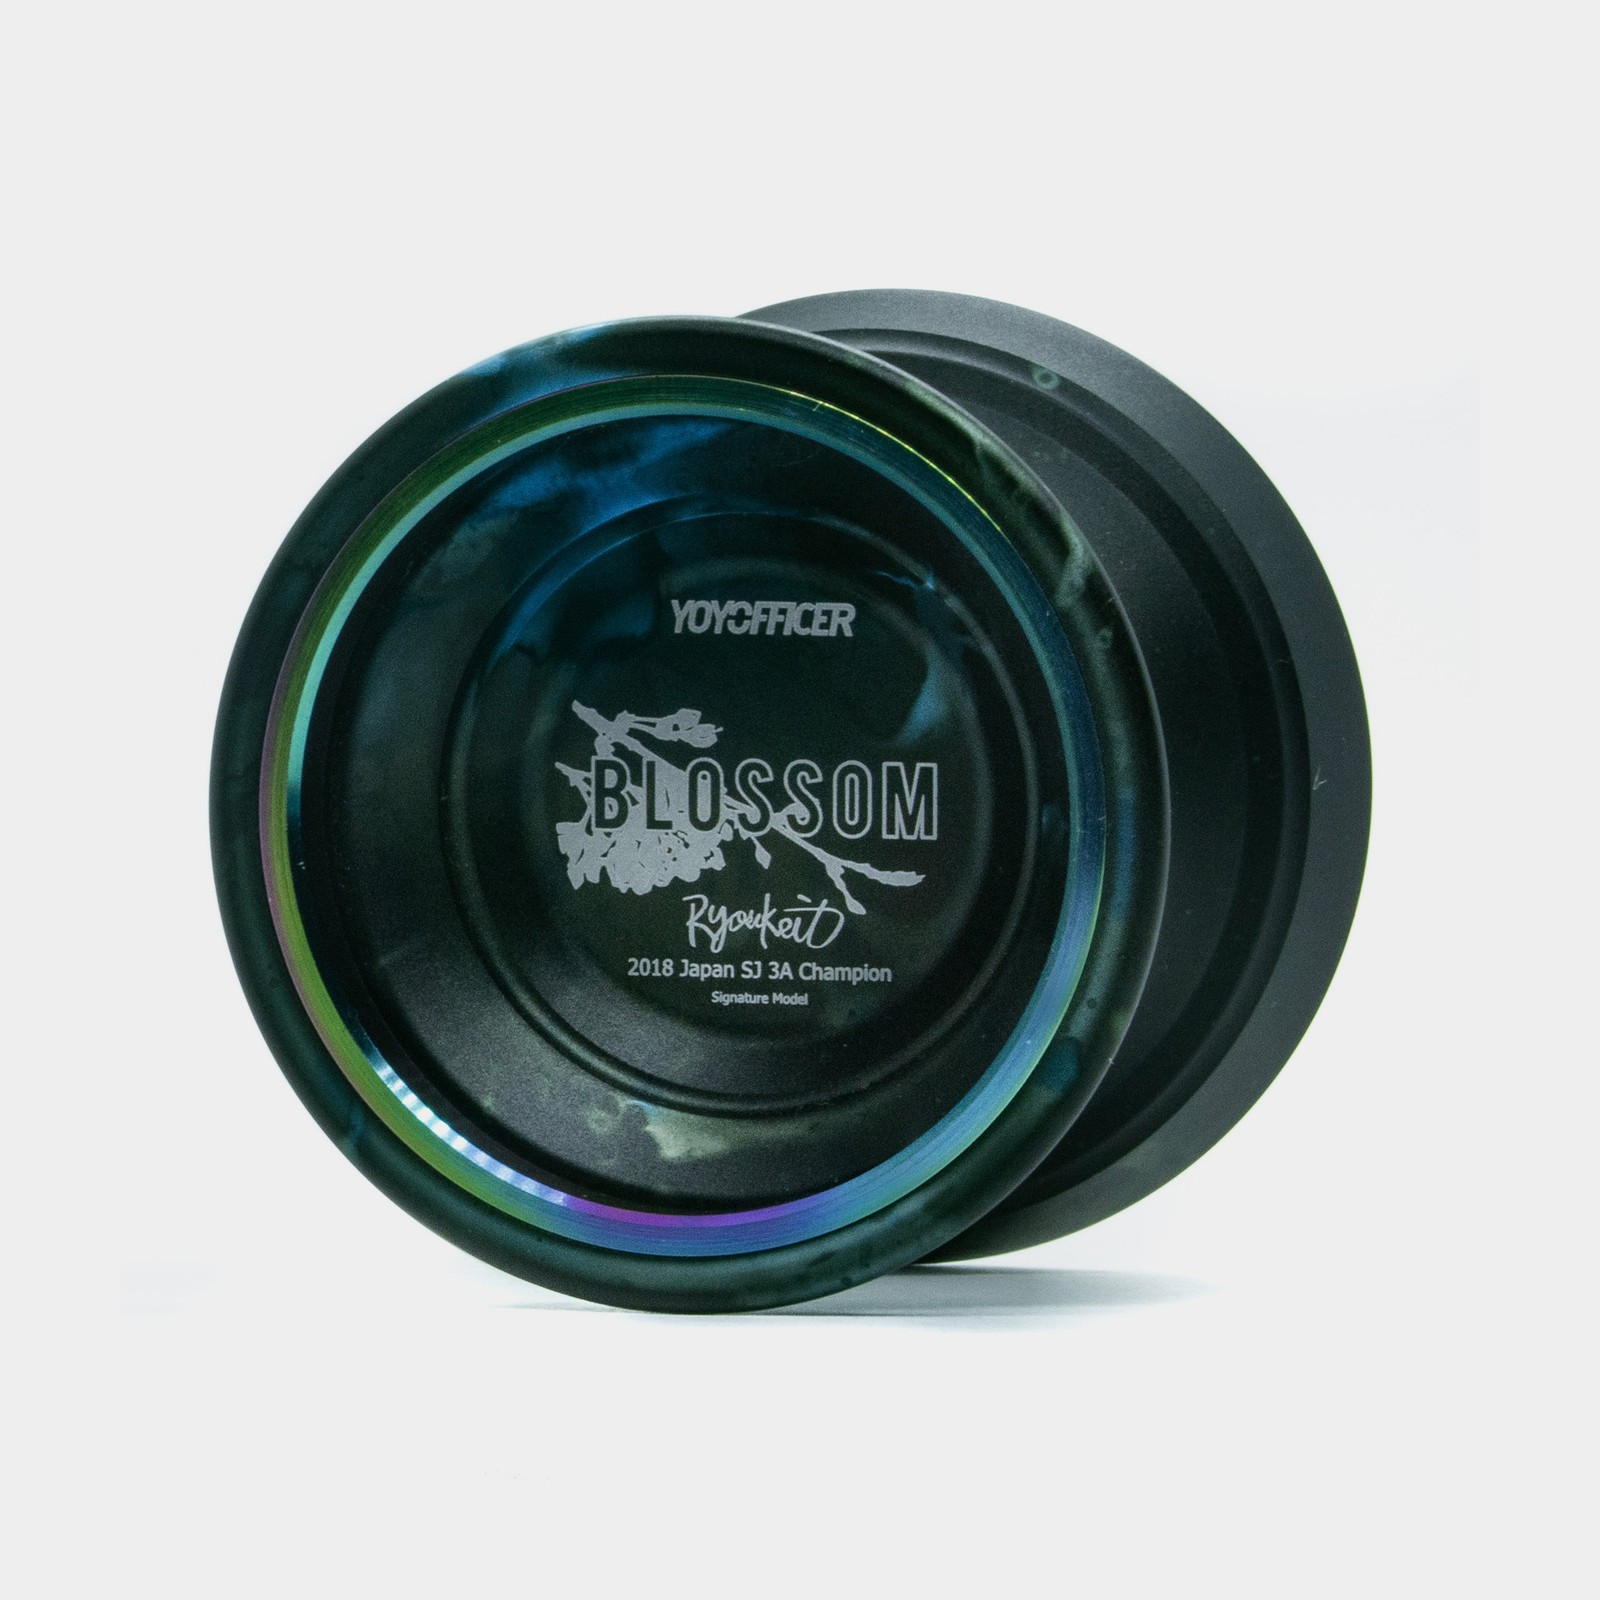 Blossom yo-yo in Green / Black Acid Wash / Rainbow by YOYOFFICER